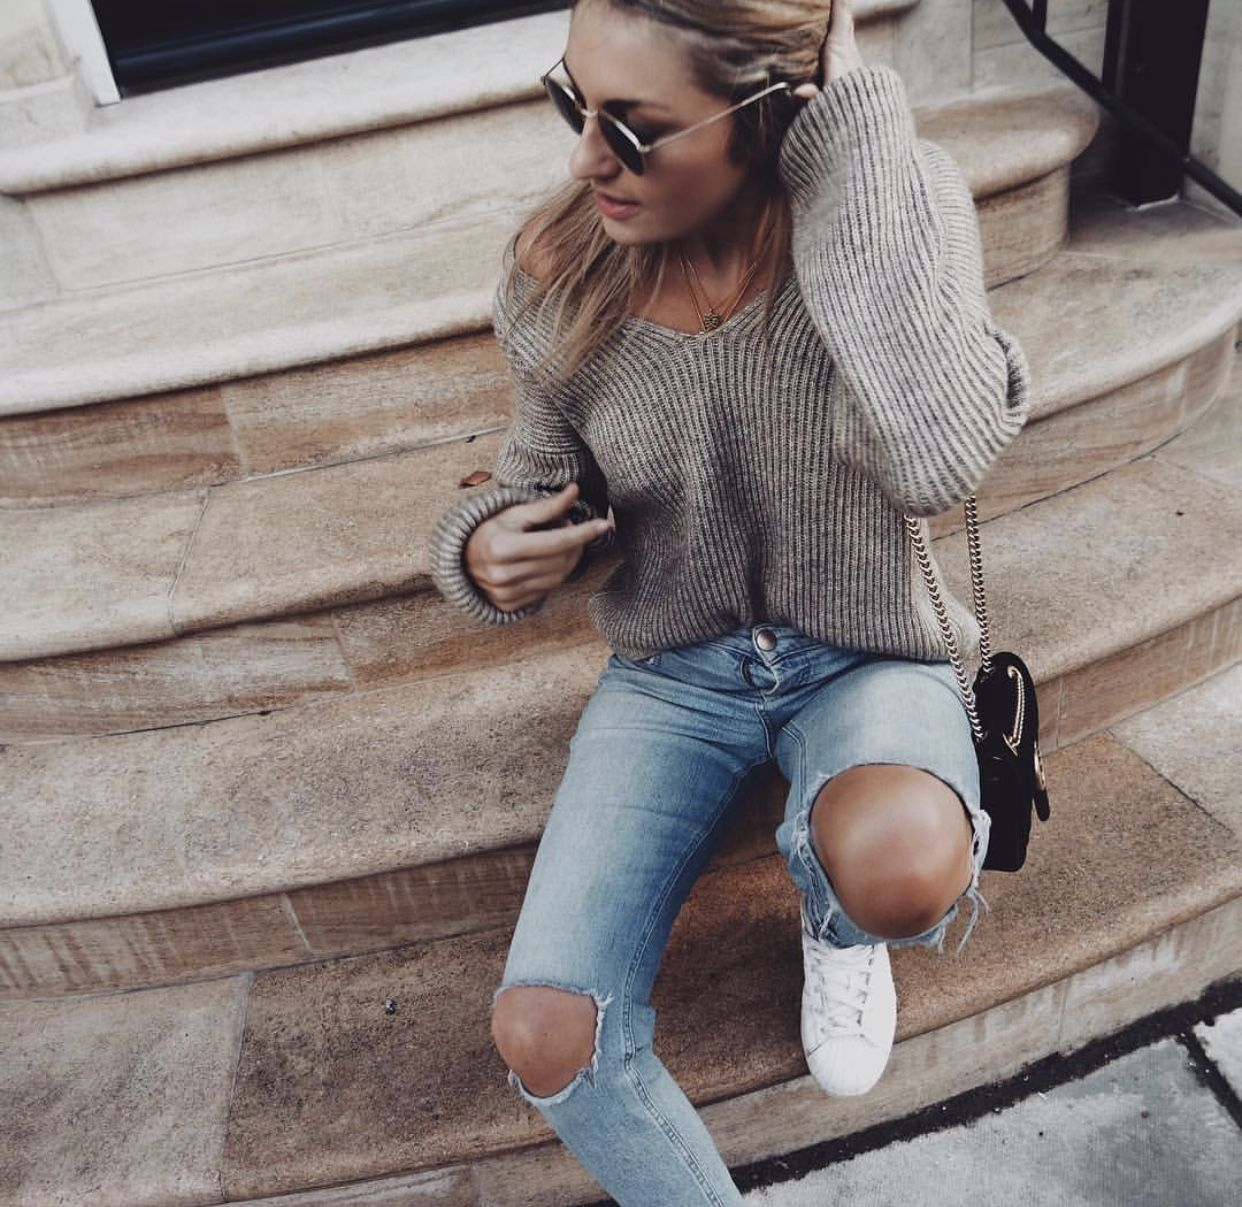 Flannel shirt trend  Pin by ѕєℓєηα on my style  Pinterest  Fashion beauty Fall